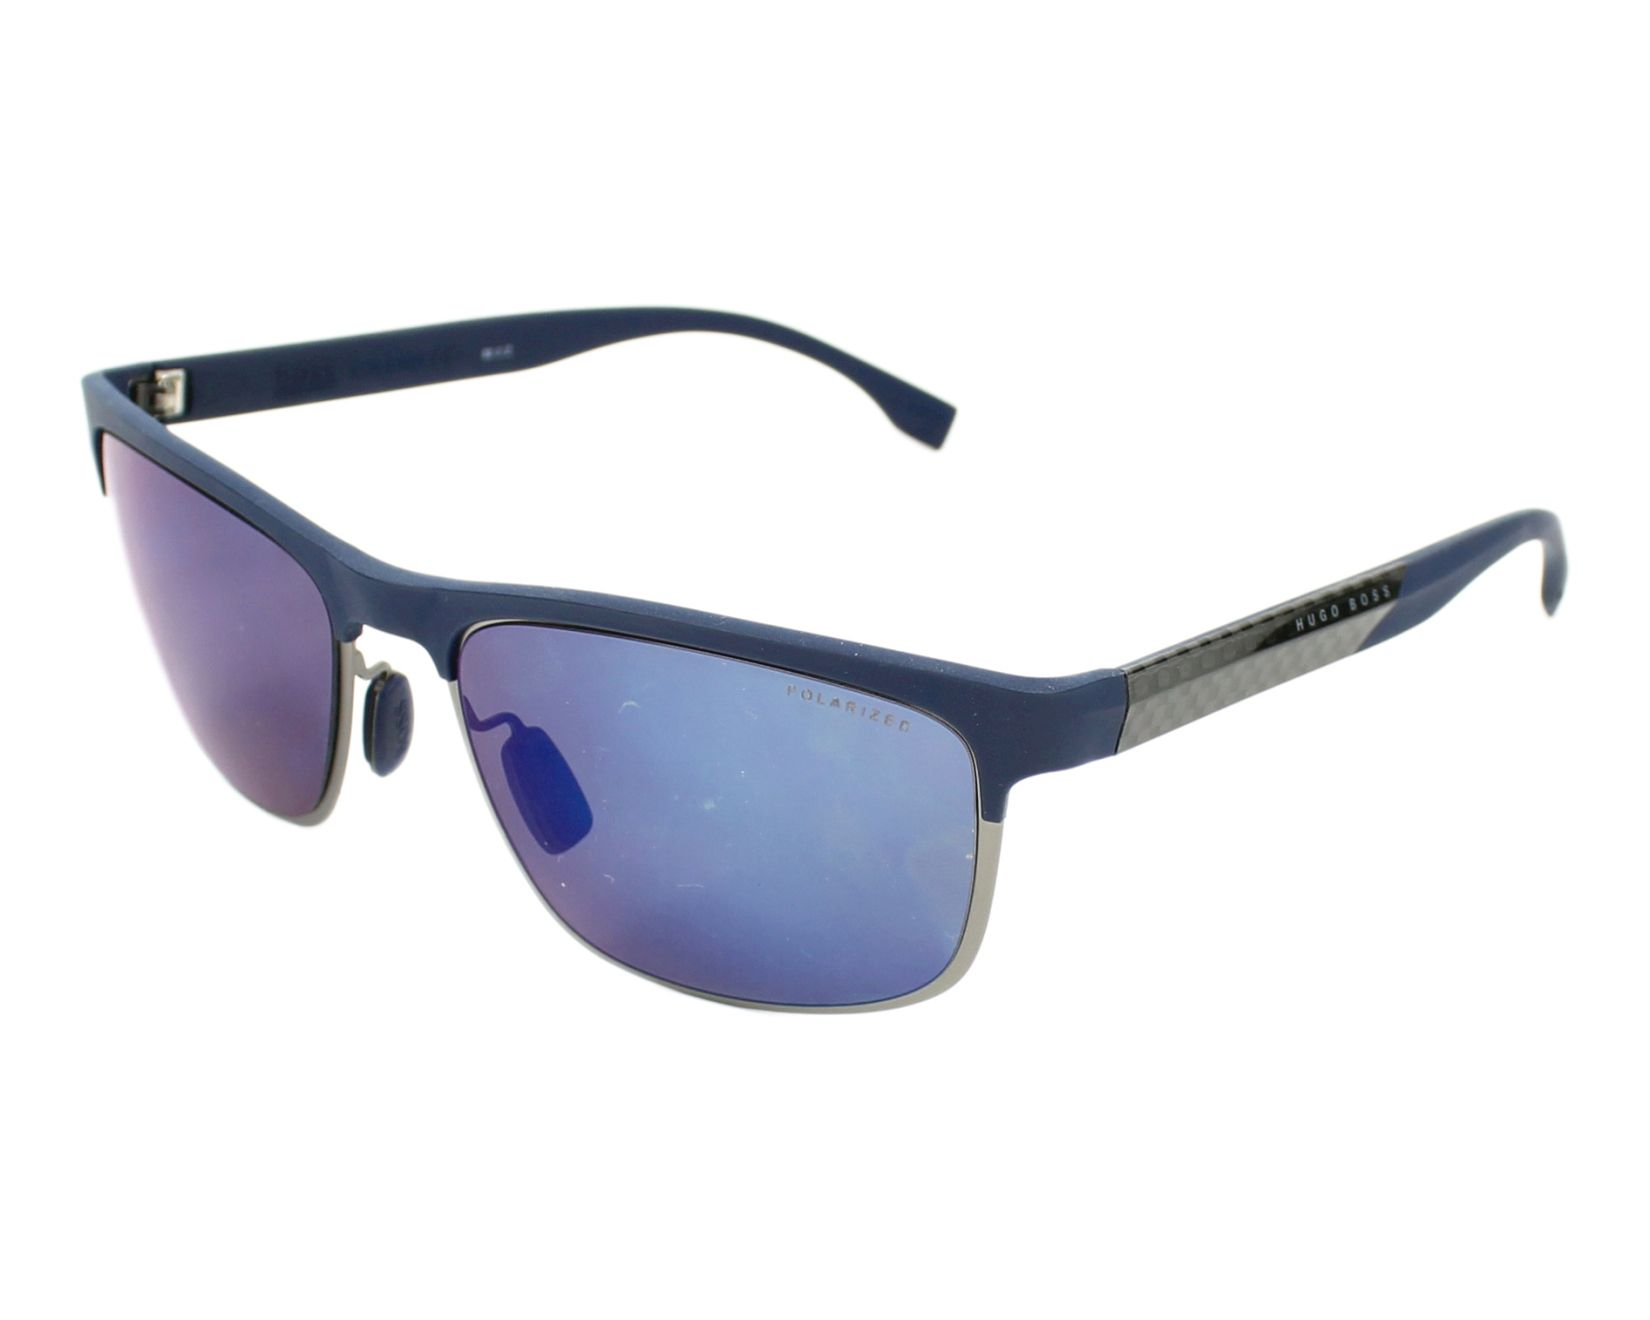 29b0dc5108 Sunglasses Hugo Boss BOSS-0835-S ILG 5X 58-18 Blue Gun